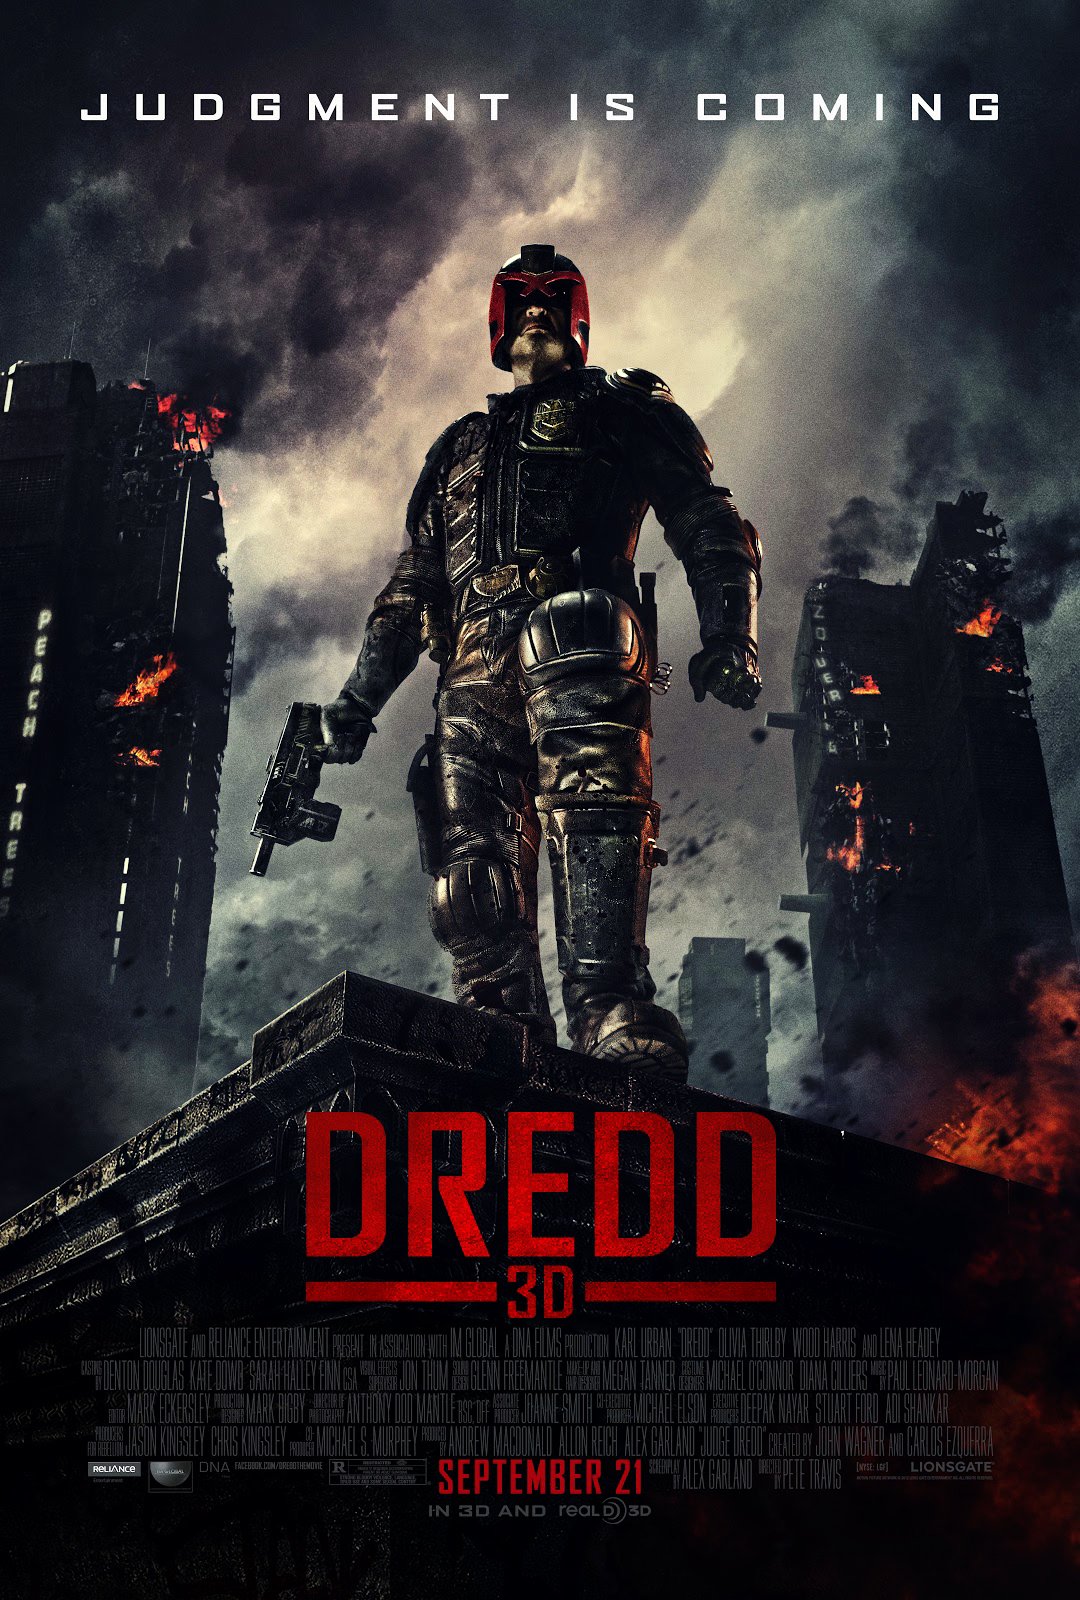 Dredd 3D Movie Poster HD Wallpapers Download Wallpapers in HD for 1080x1600